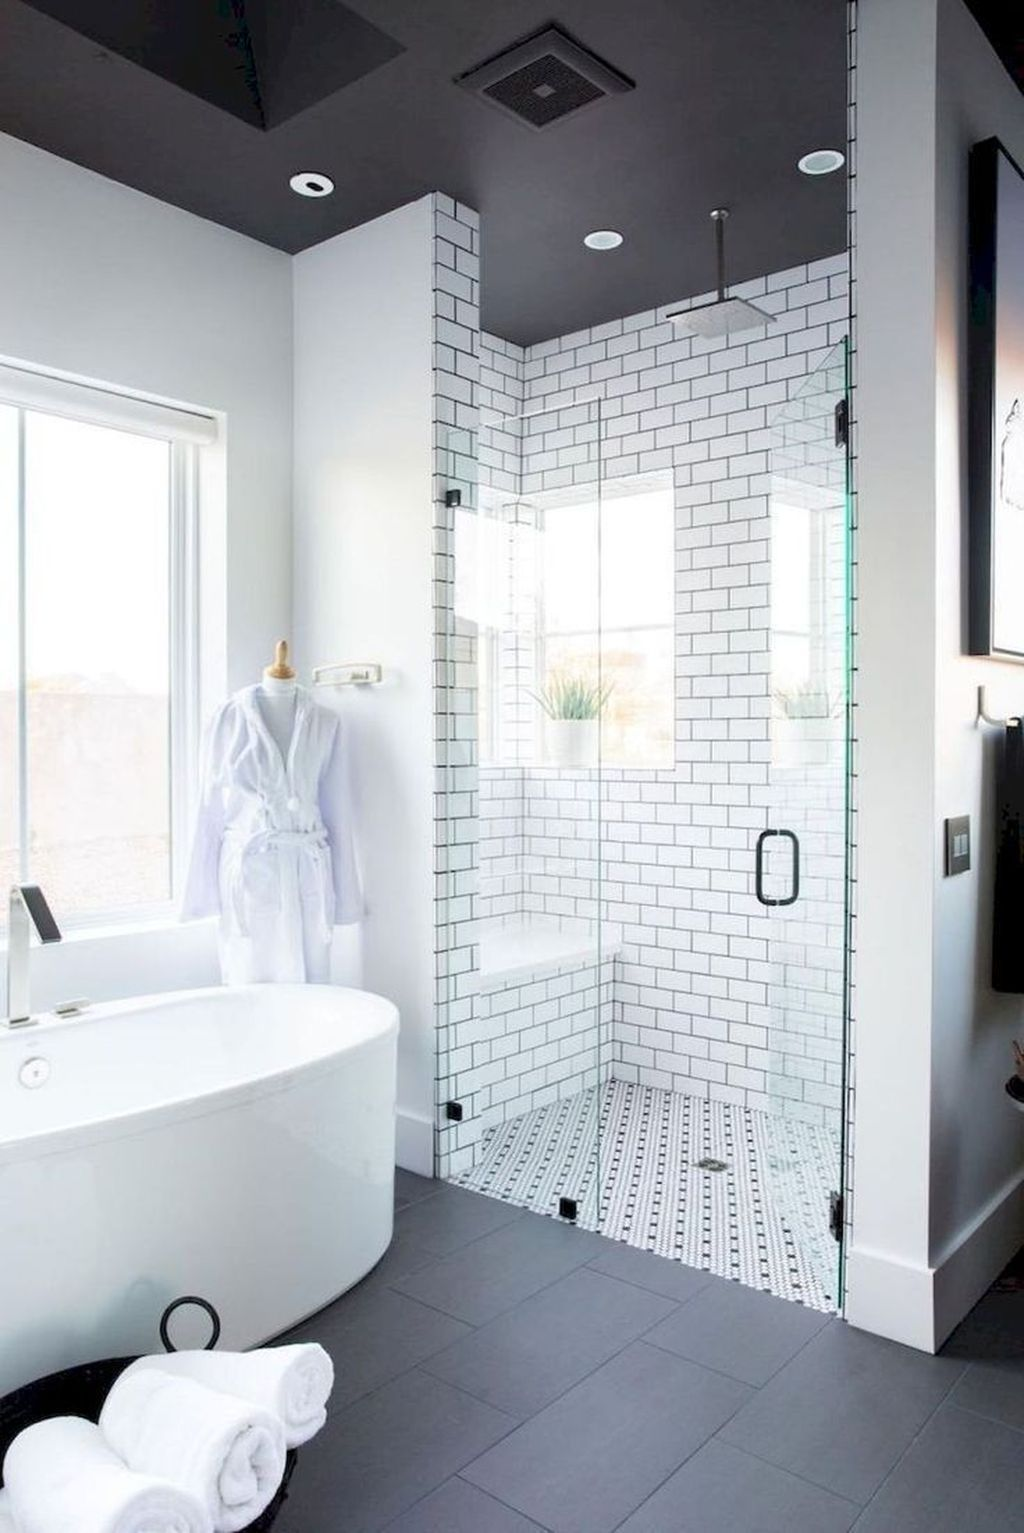 42 Perfect Shower Design Ideas To Remodel Your Bathroom Bathroom Remodel Shower Bathrooms Remodel Bathroom Remodel Master